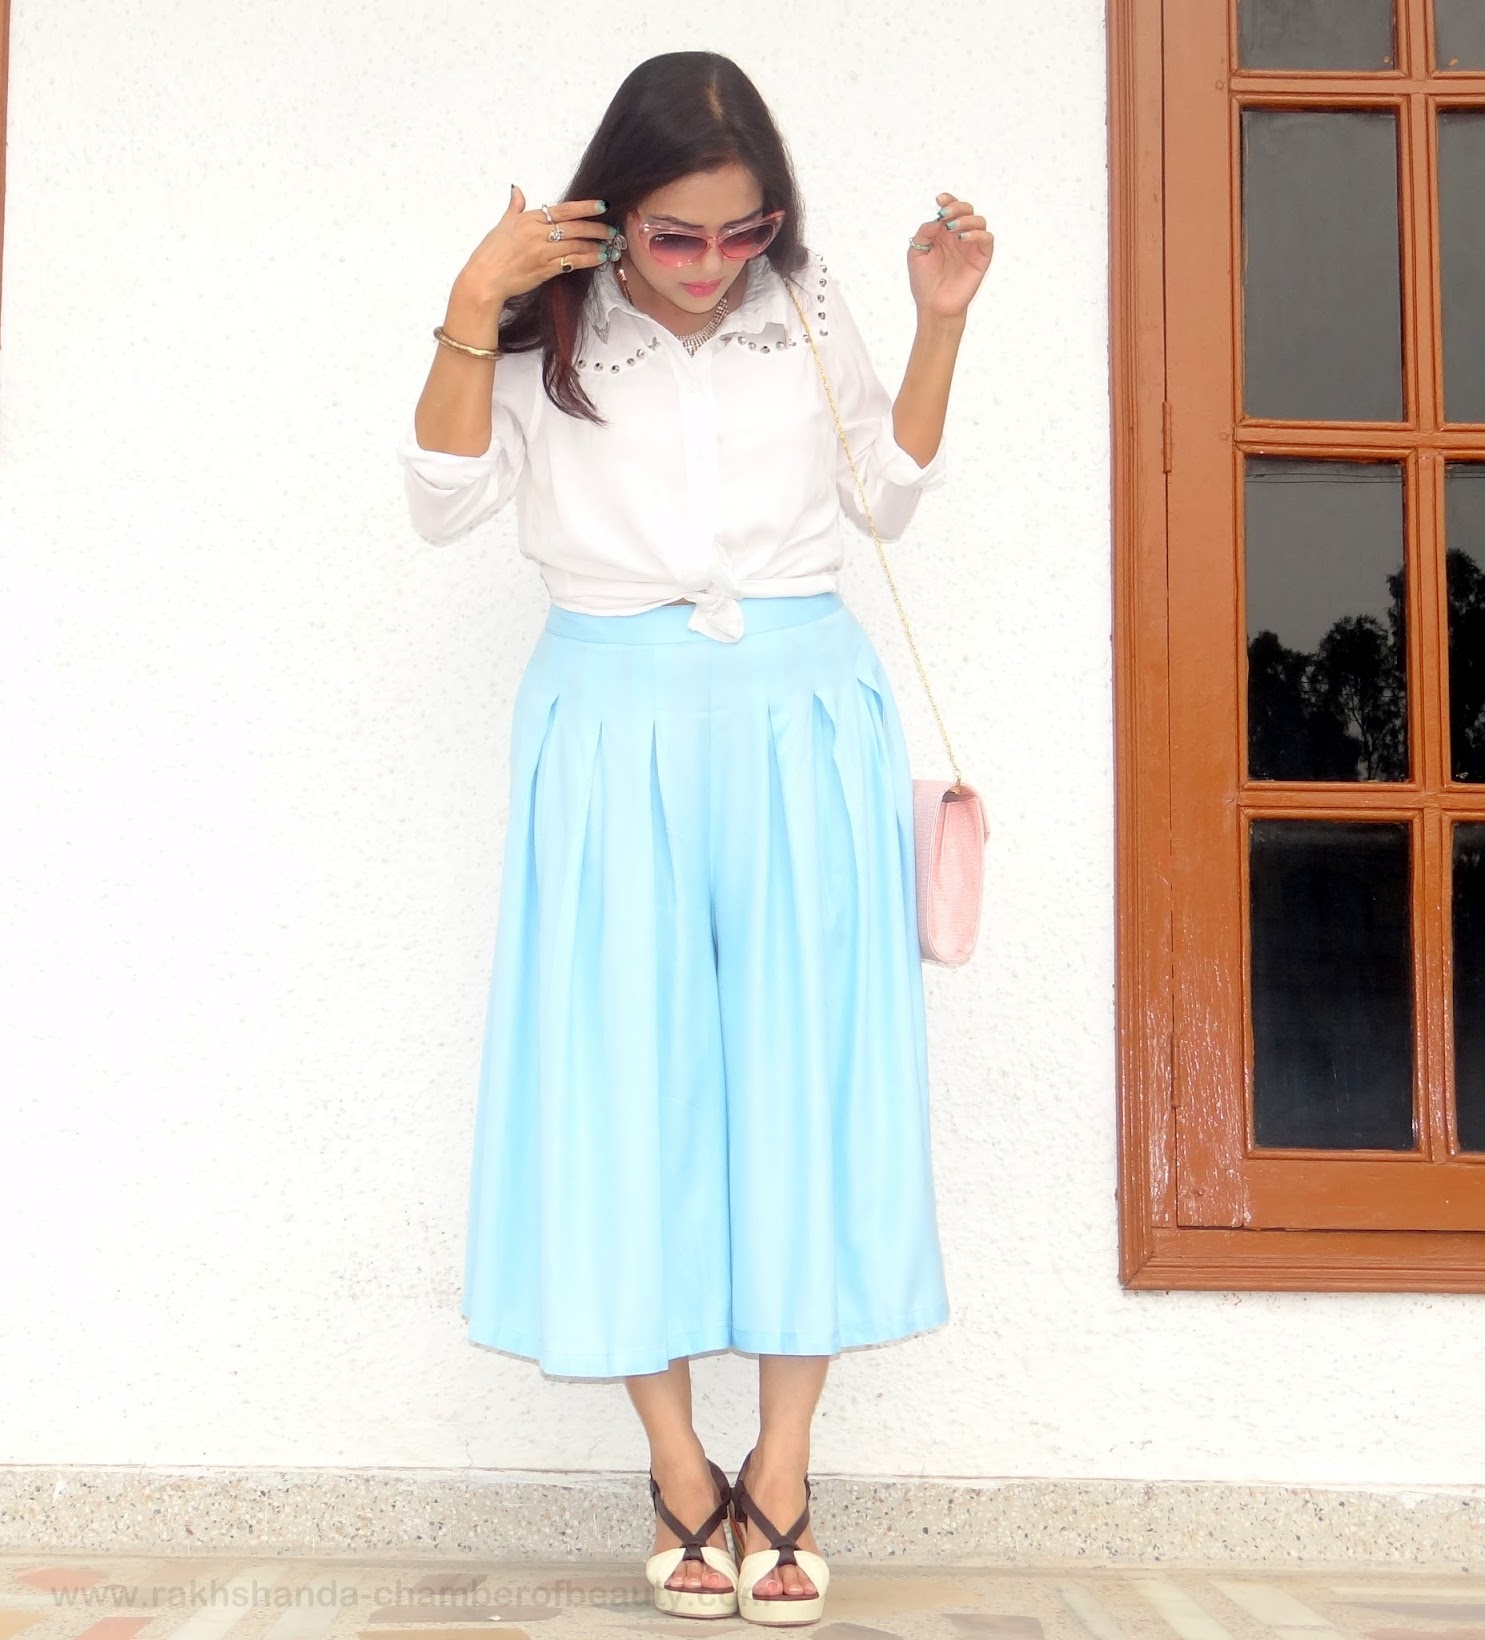 Gearing up for monsoons- OOTD | How to style culottes, fashion trends 2015, how to wear culottes, OOTD, outfit of the day, Stalkbuylove culottes, Indian fashion blogger